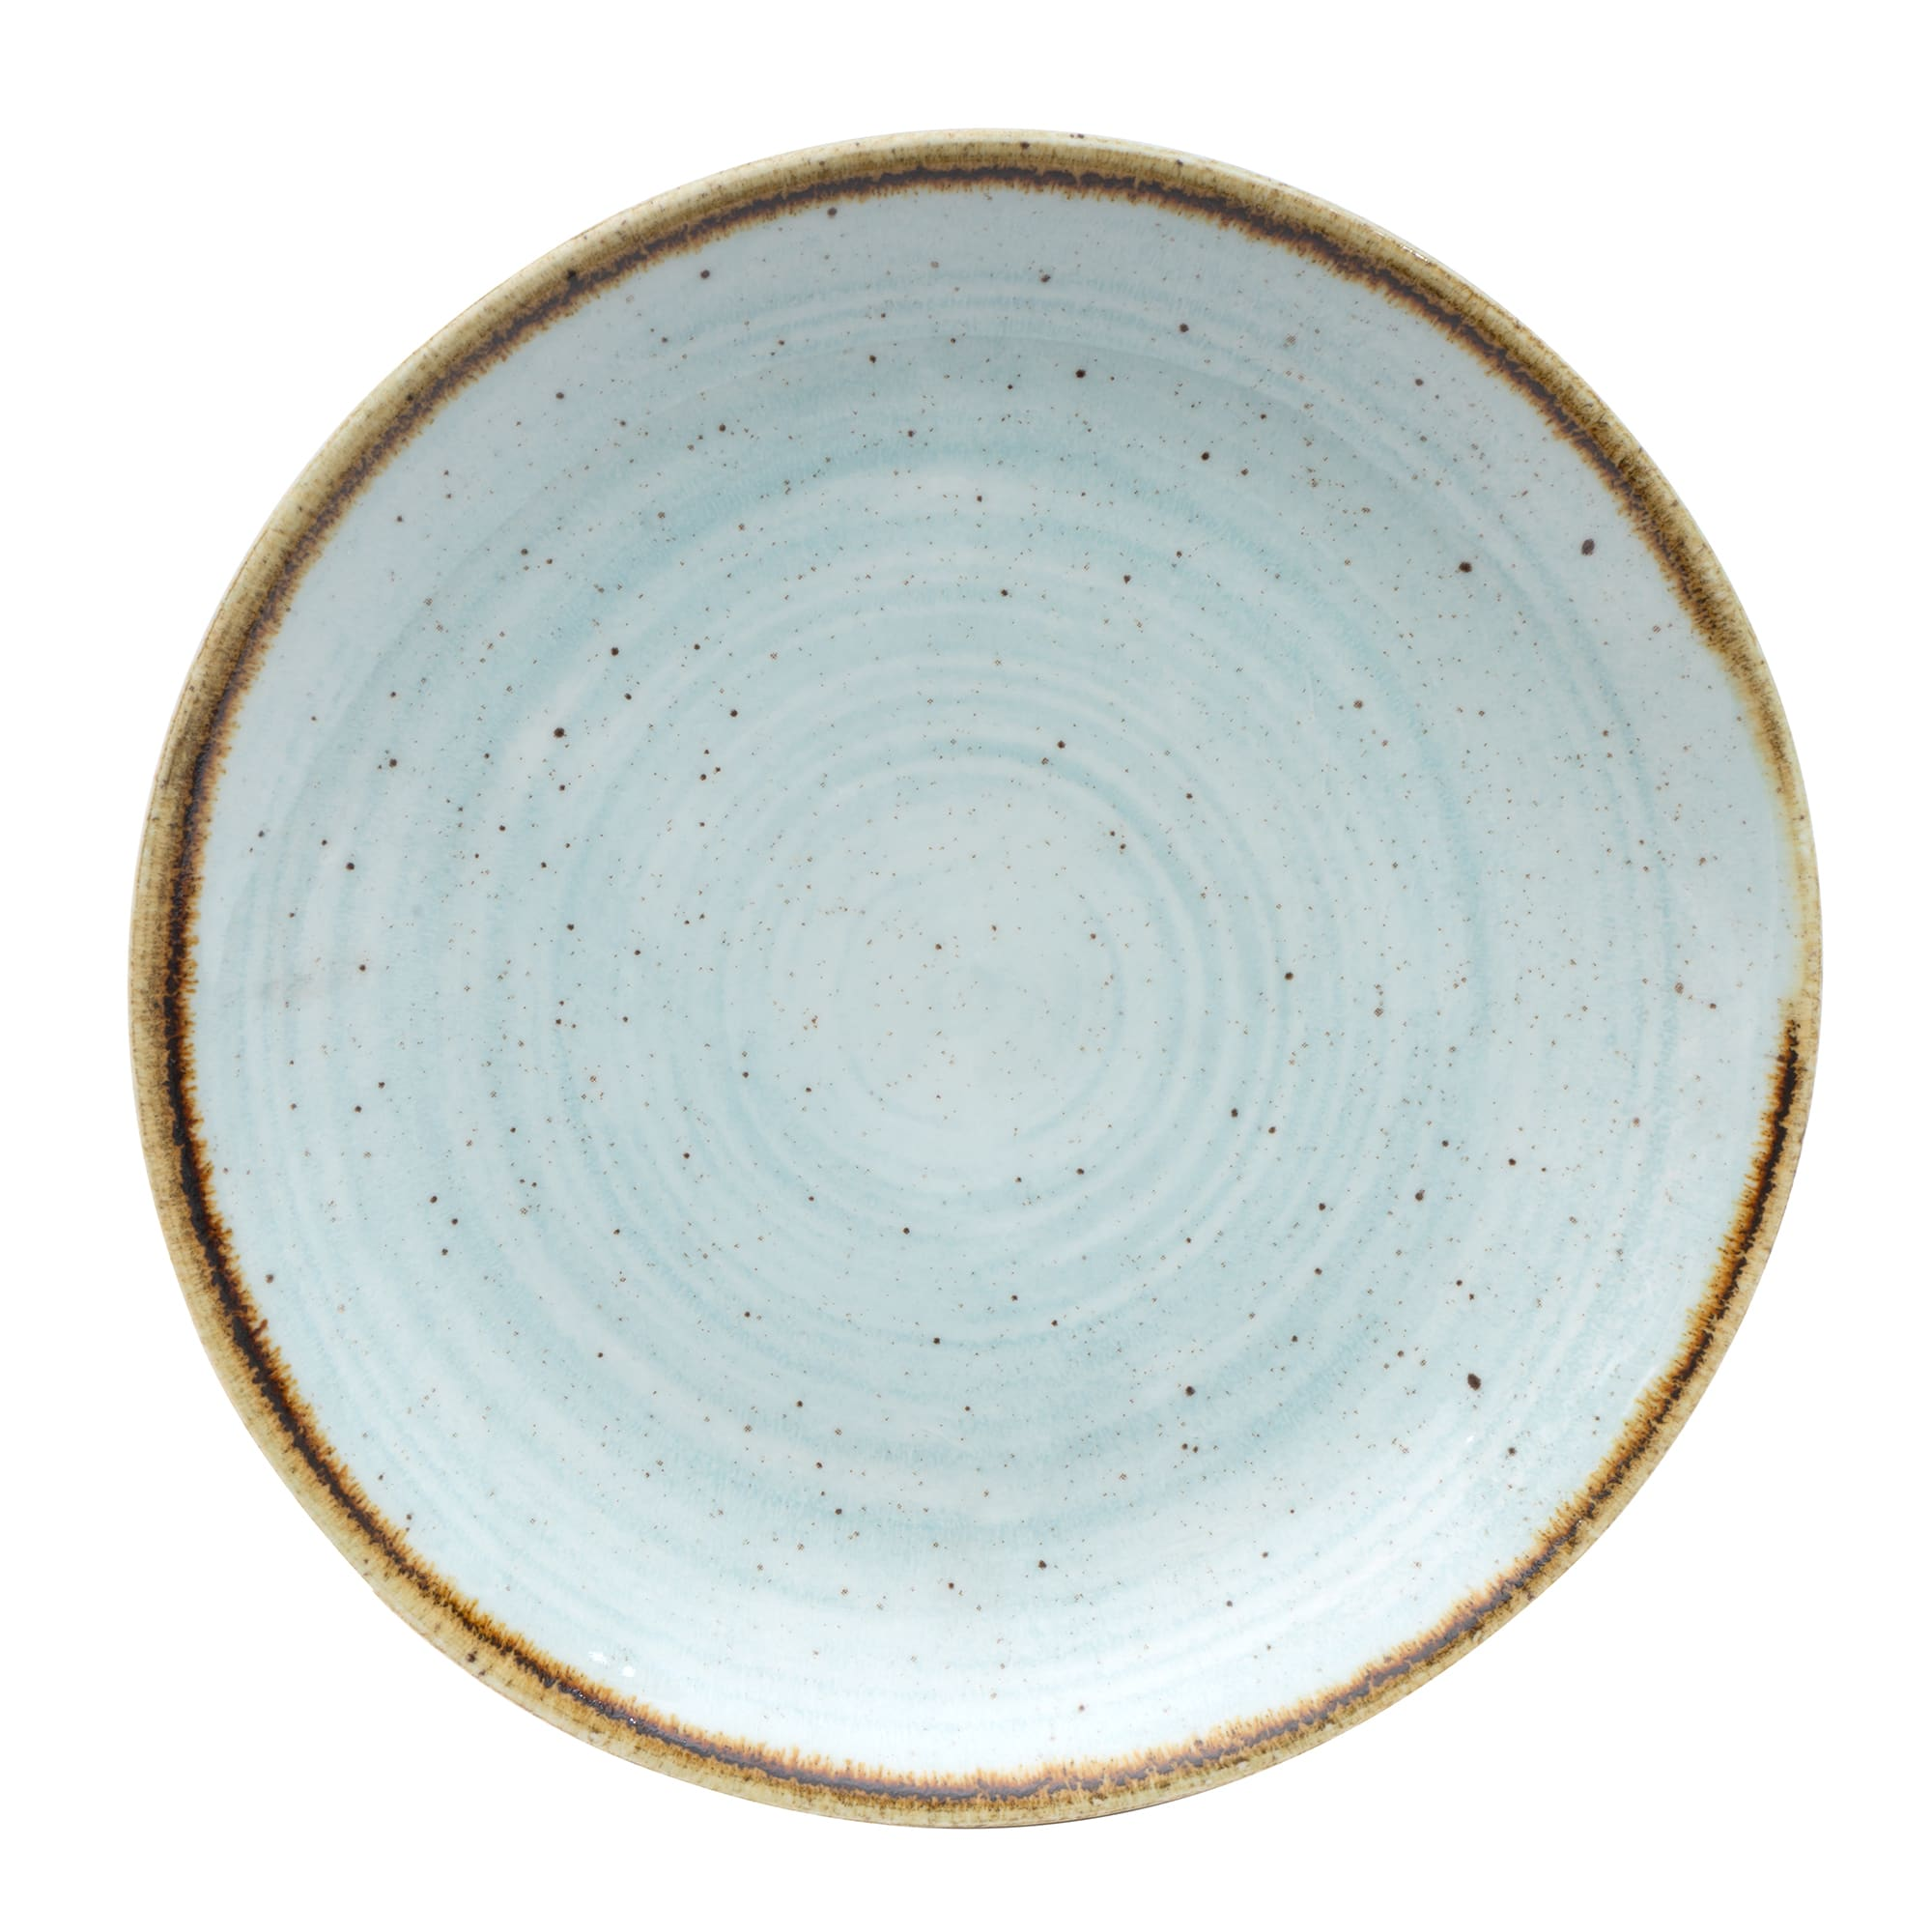 "Churchill SDESEVP61 6.5"" Round Stonecast Plate - Ceramic, Duck Egg Blue"